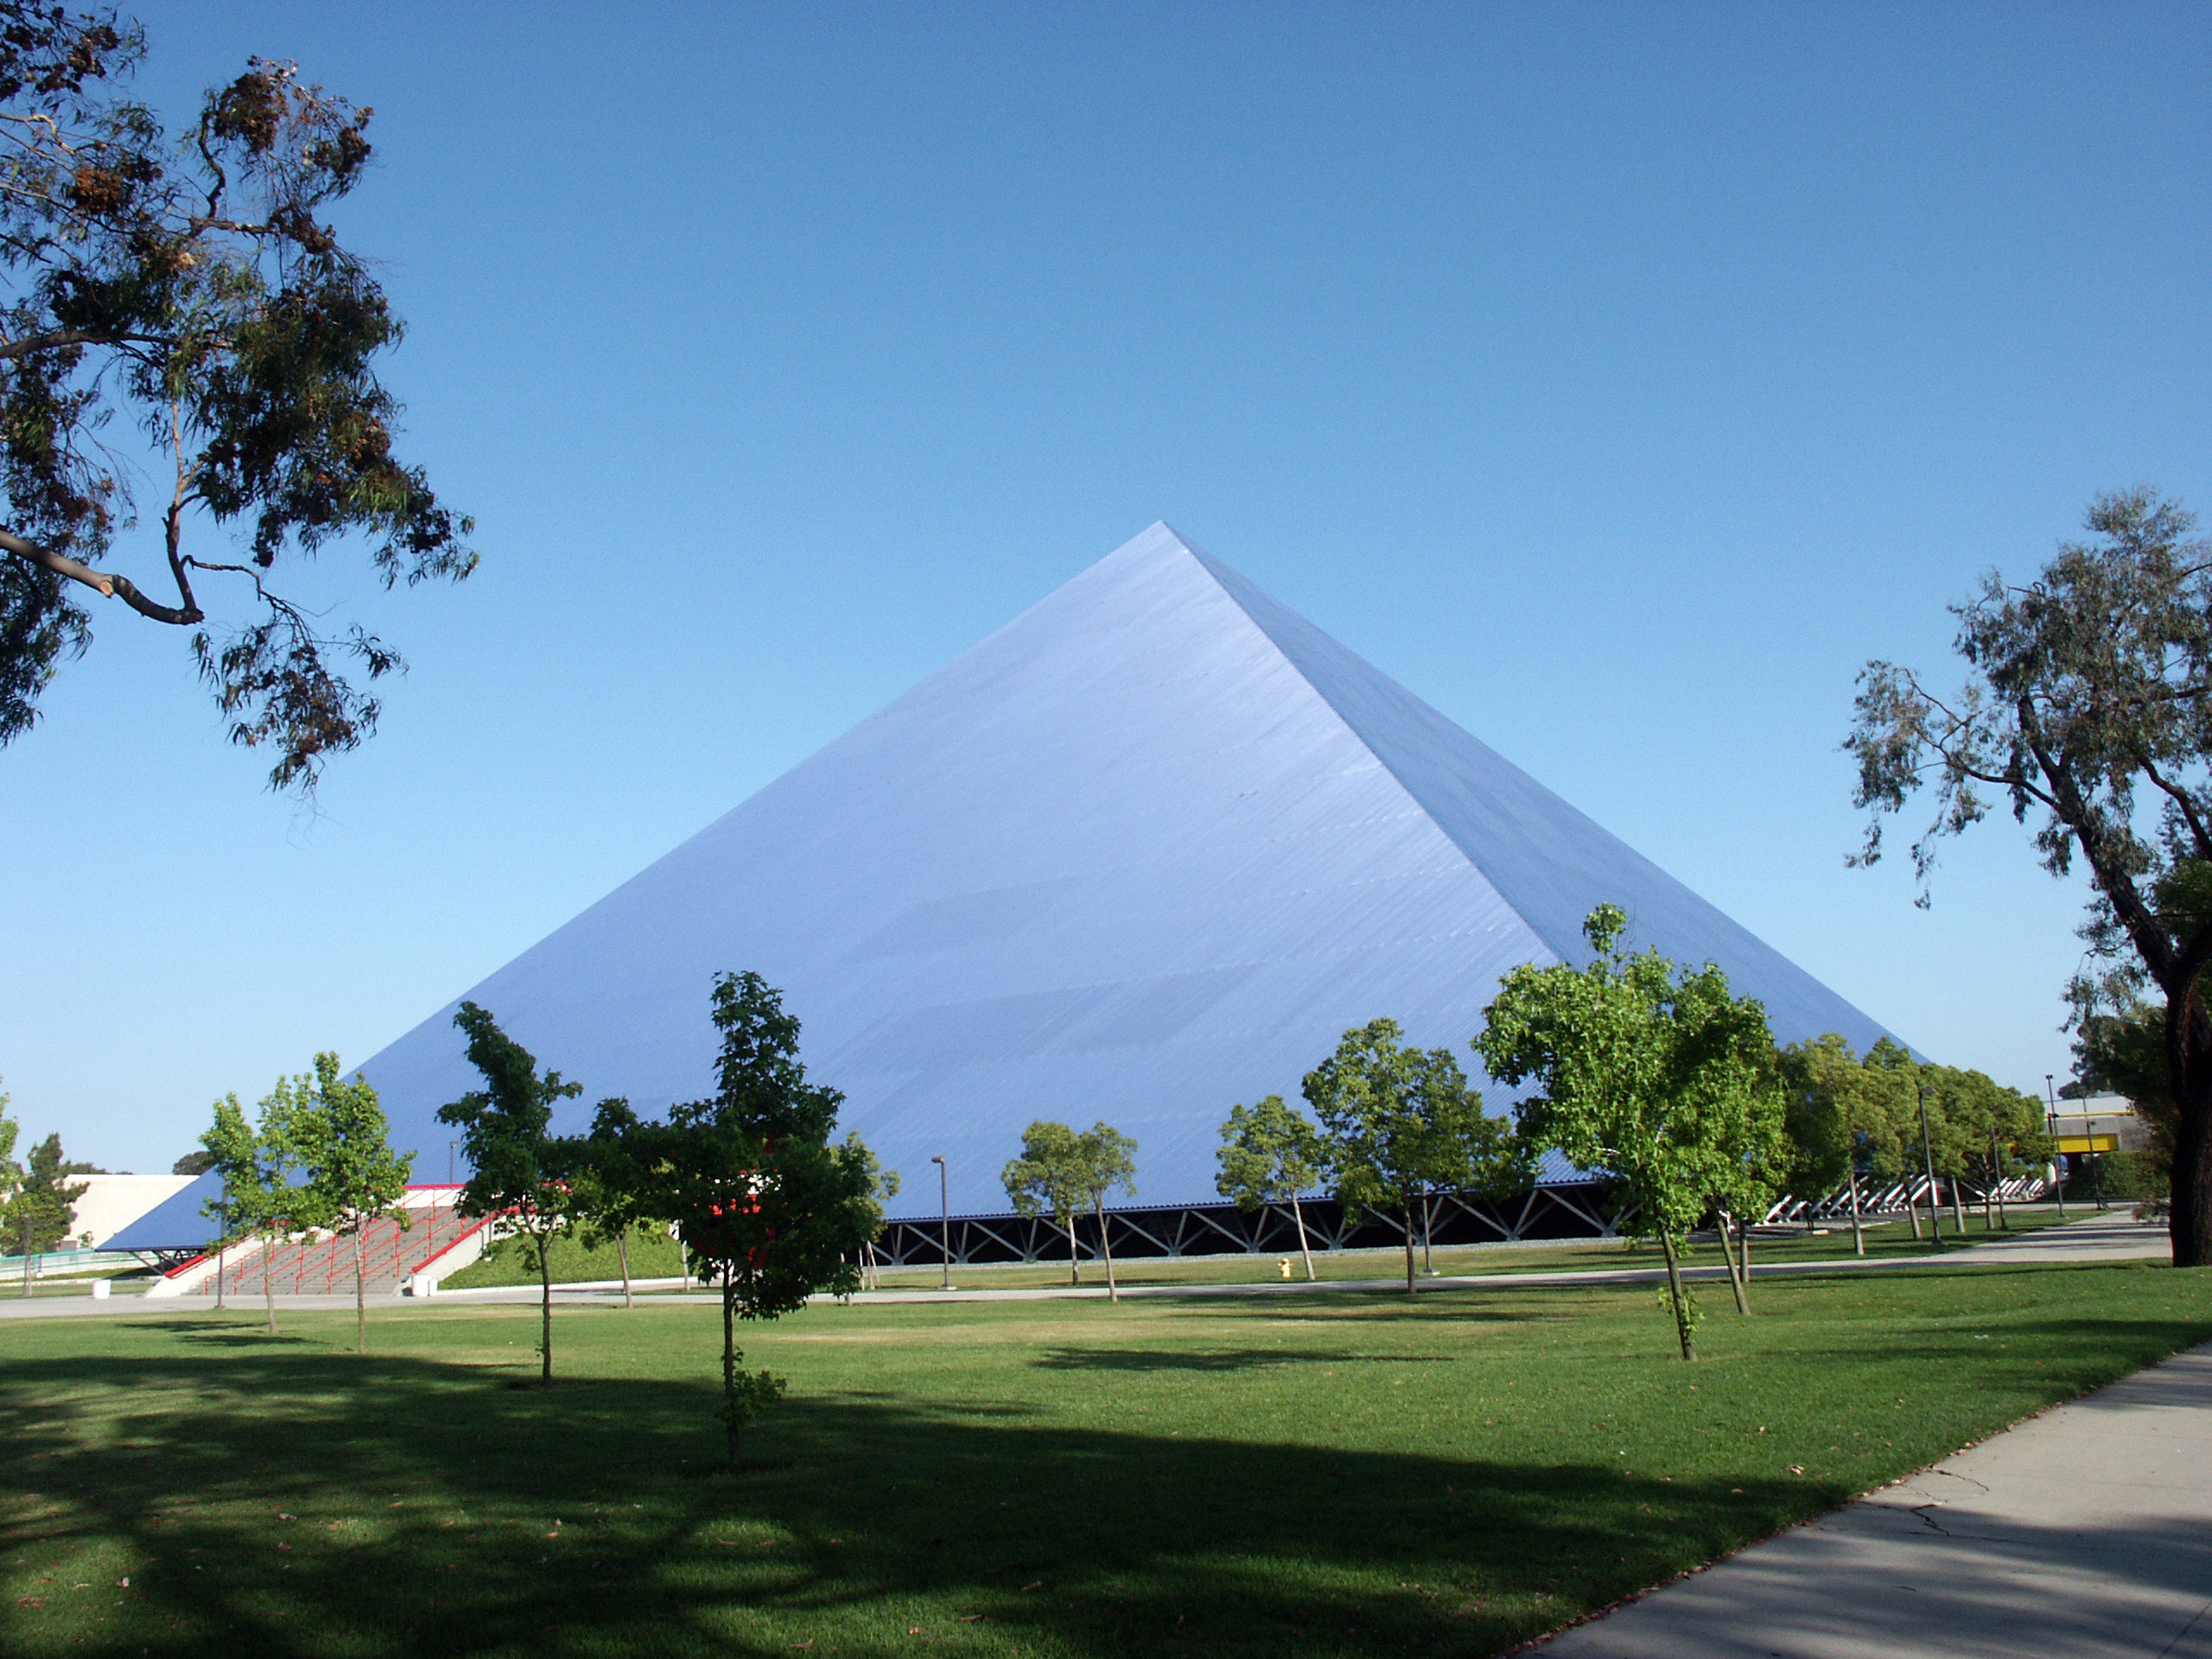 Depiction of Walter Pyramid